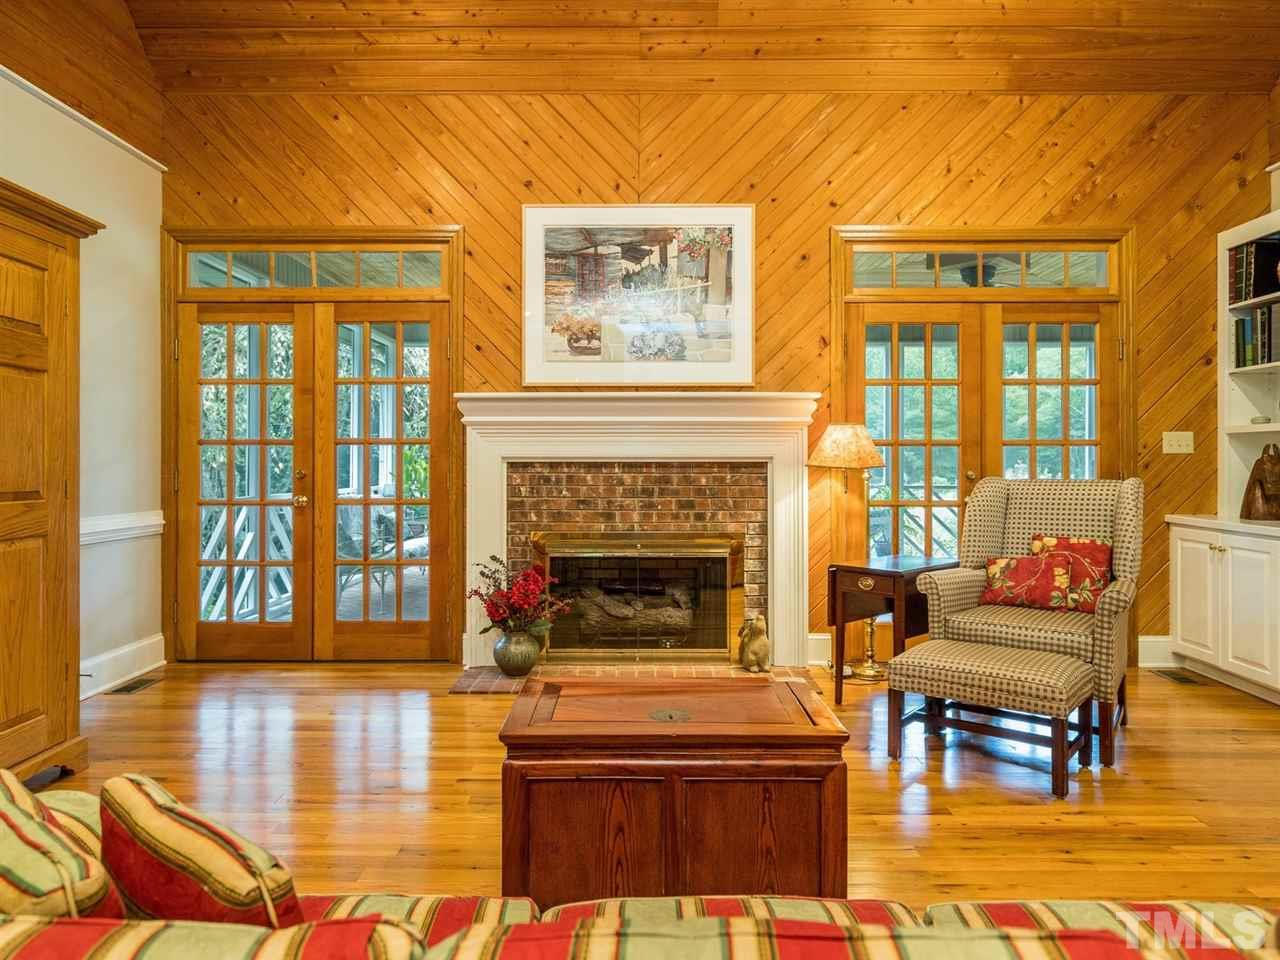 Friends and family will enjoy spending time in this inviting space by the gas log fireplace.